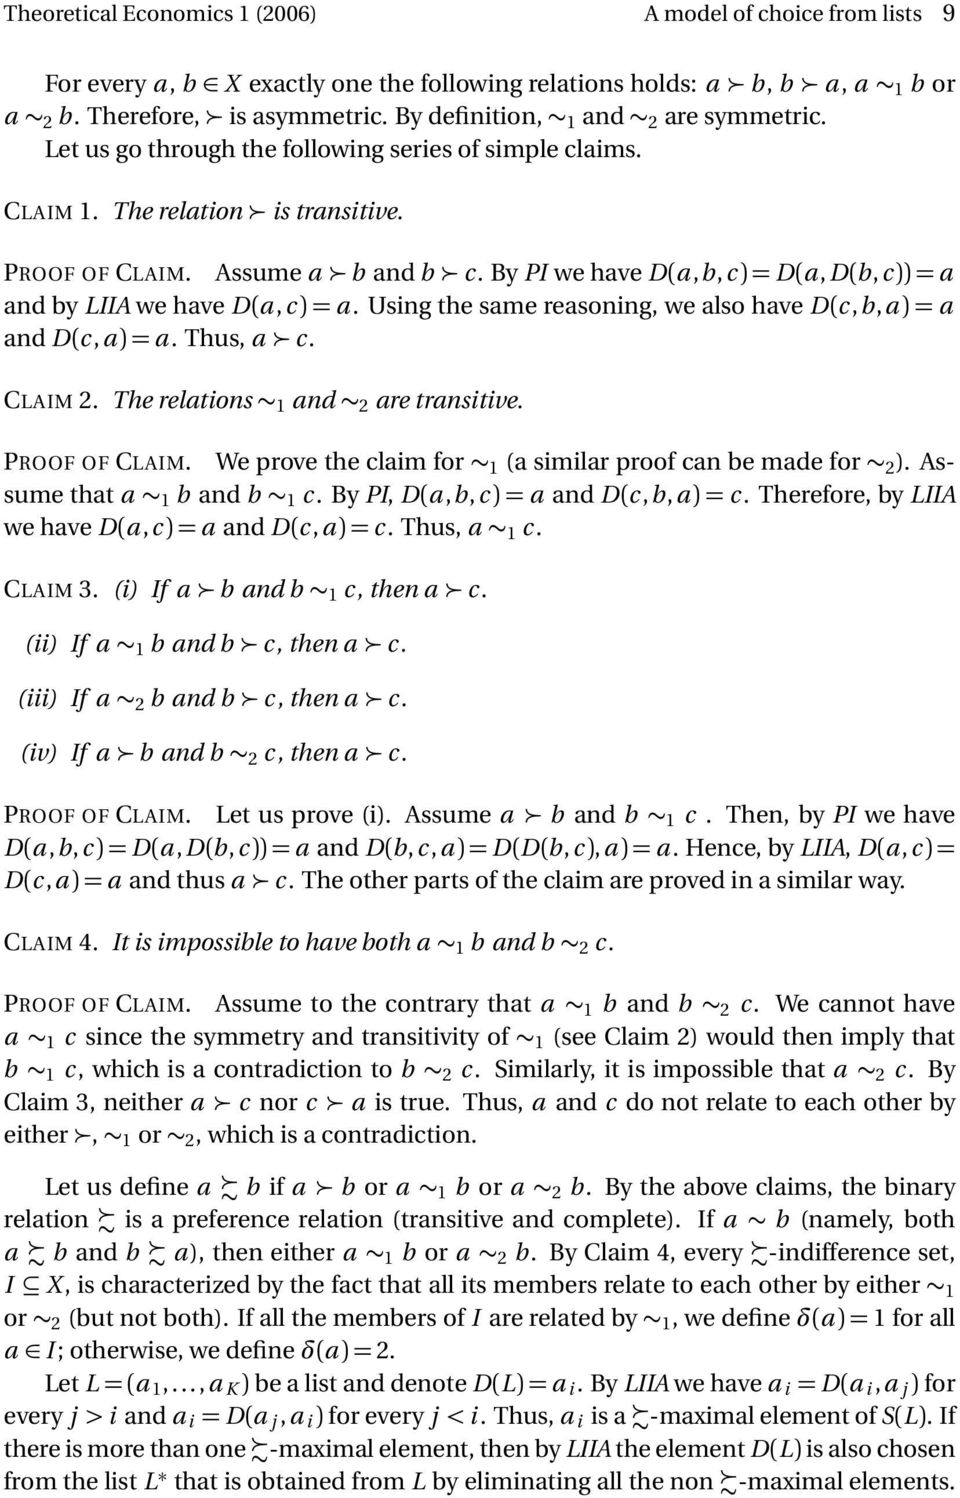 By PI we have D(a,b,c) = D(a,D(b,c)) = a and by LIIA we have D(a, c) = a. Using the same reasoning, we also have D(c, b, a ) = a and D(c,a ) = a. Thus, a c. CLAIM 2.